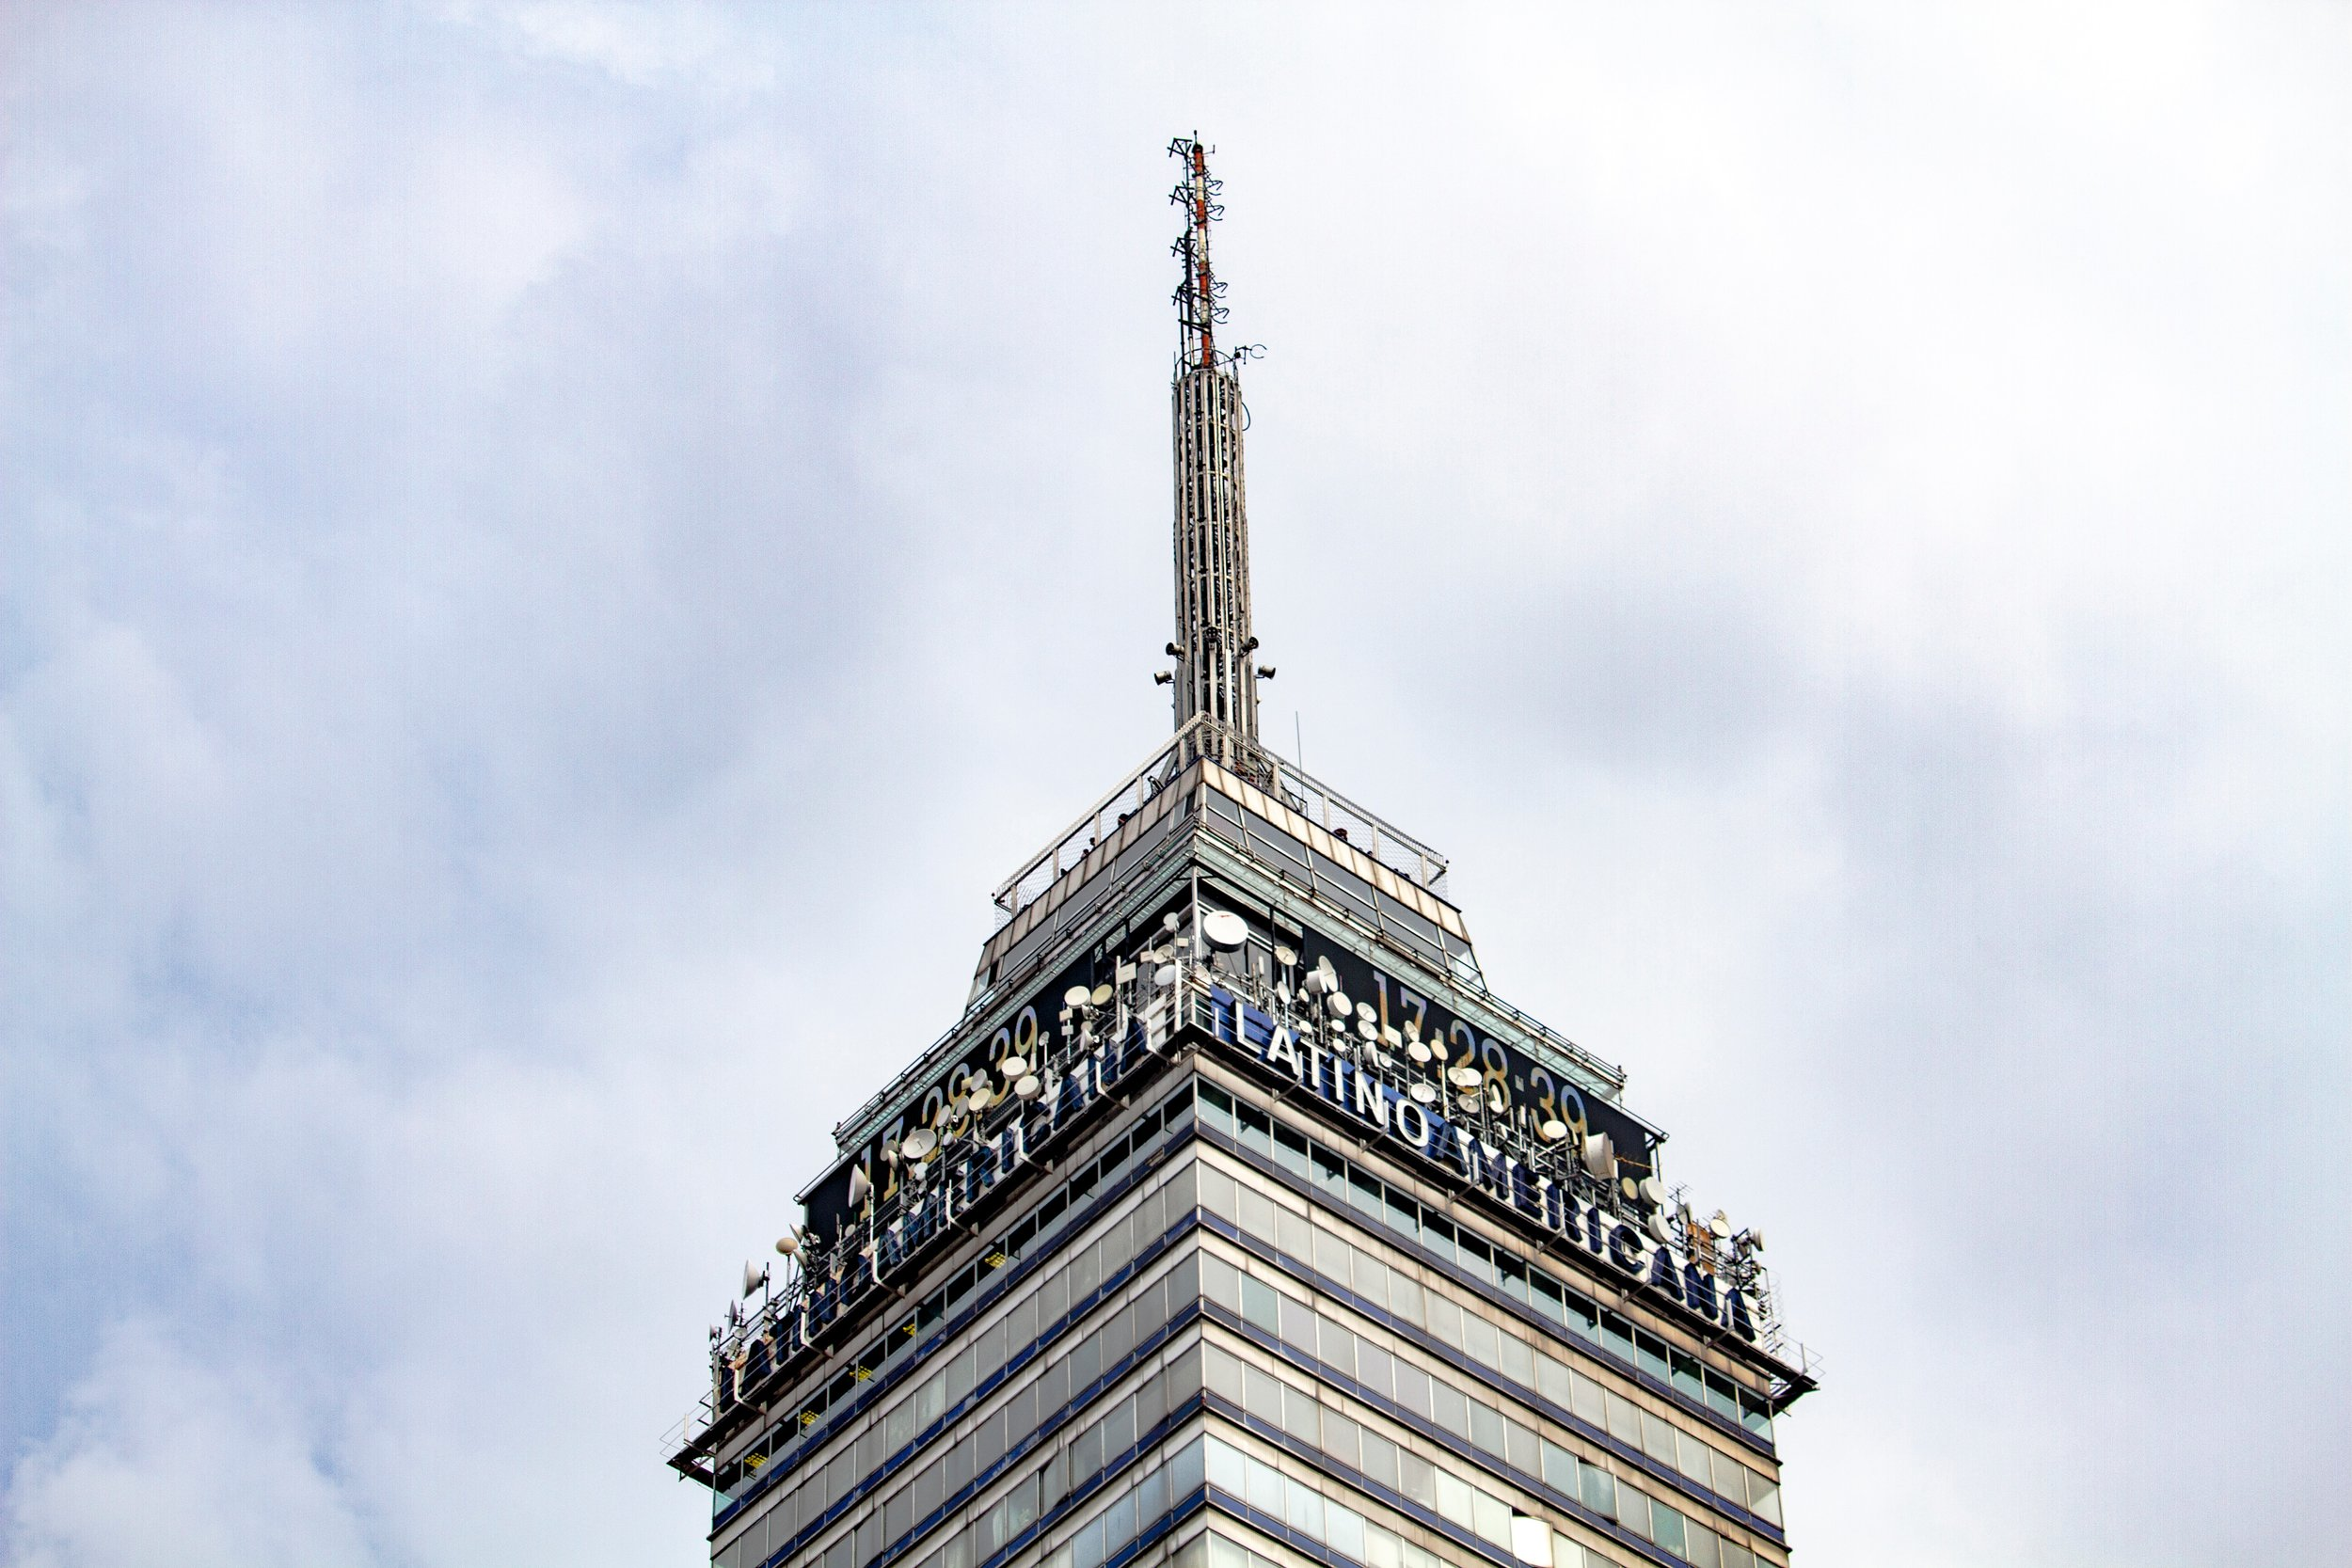 Visit the torre Latinoamericana for great views!